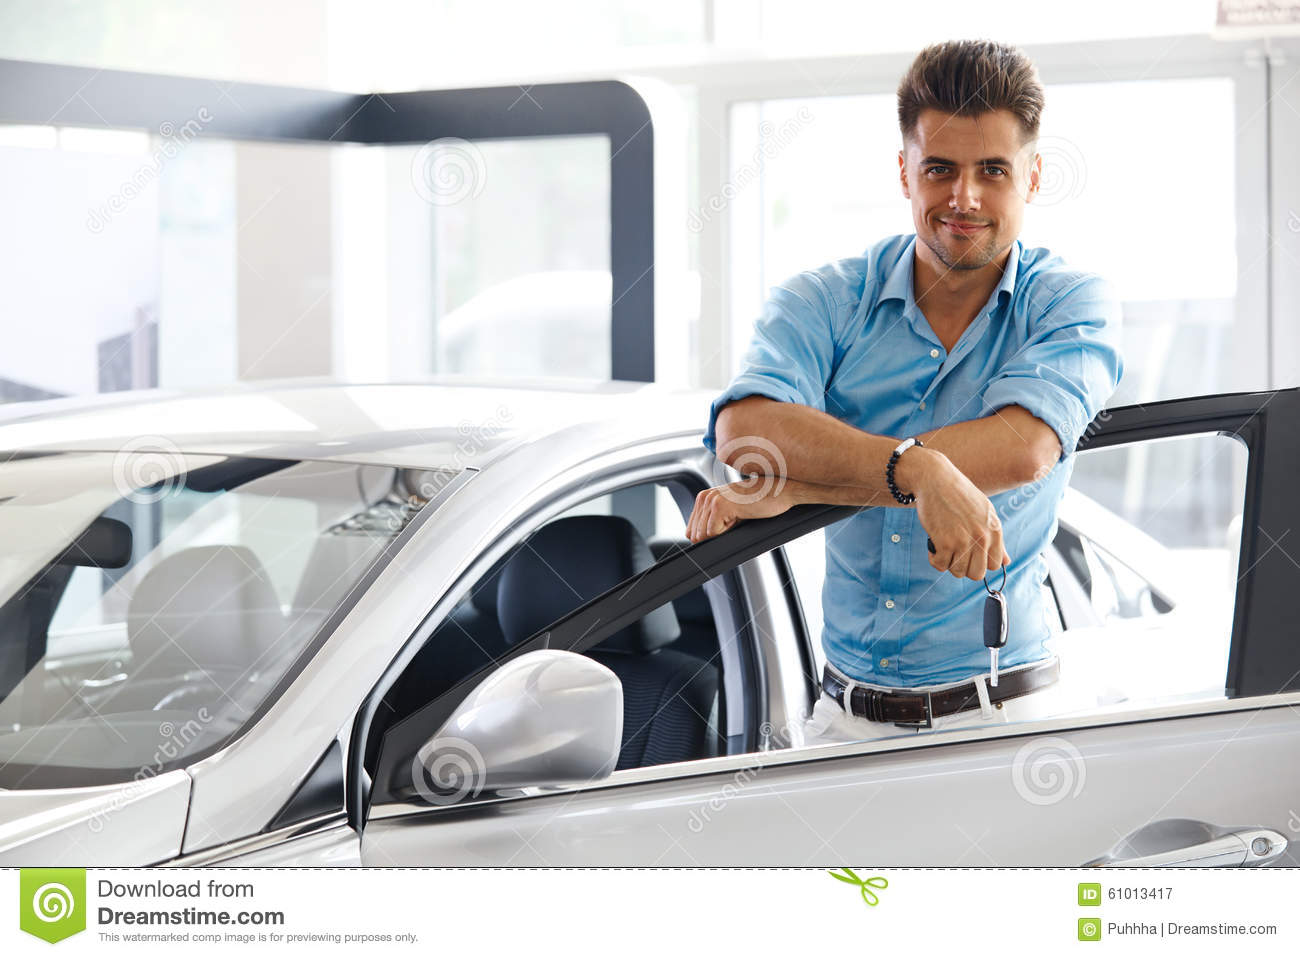 Car Showroom Happy Man With Keys To The Car Of His Dreams Stock Image Image Of Vehicle Showroom 61013417